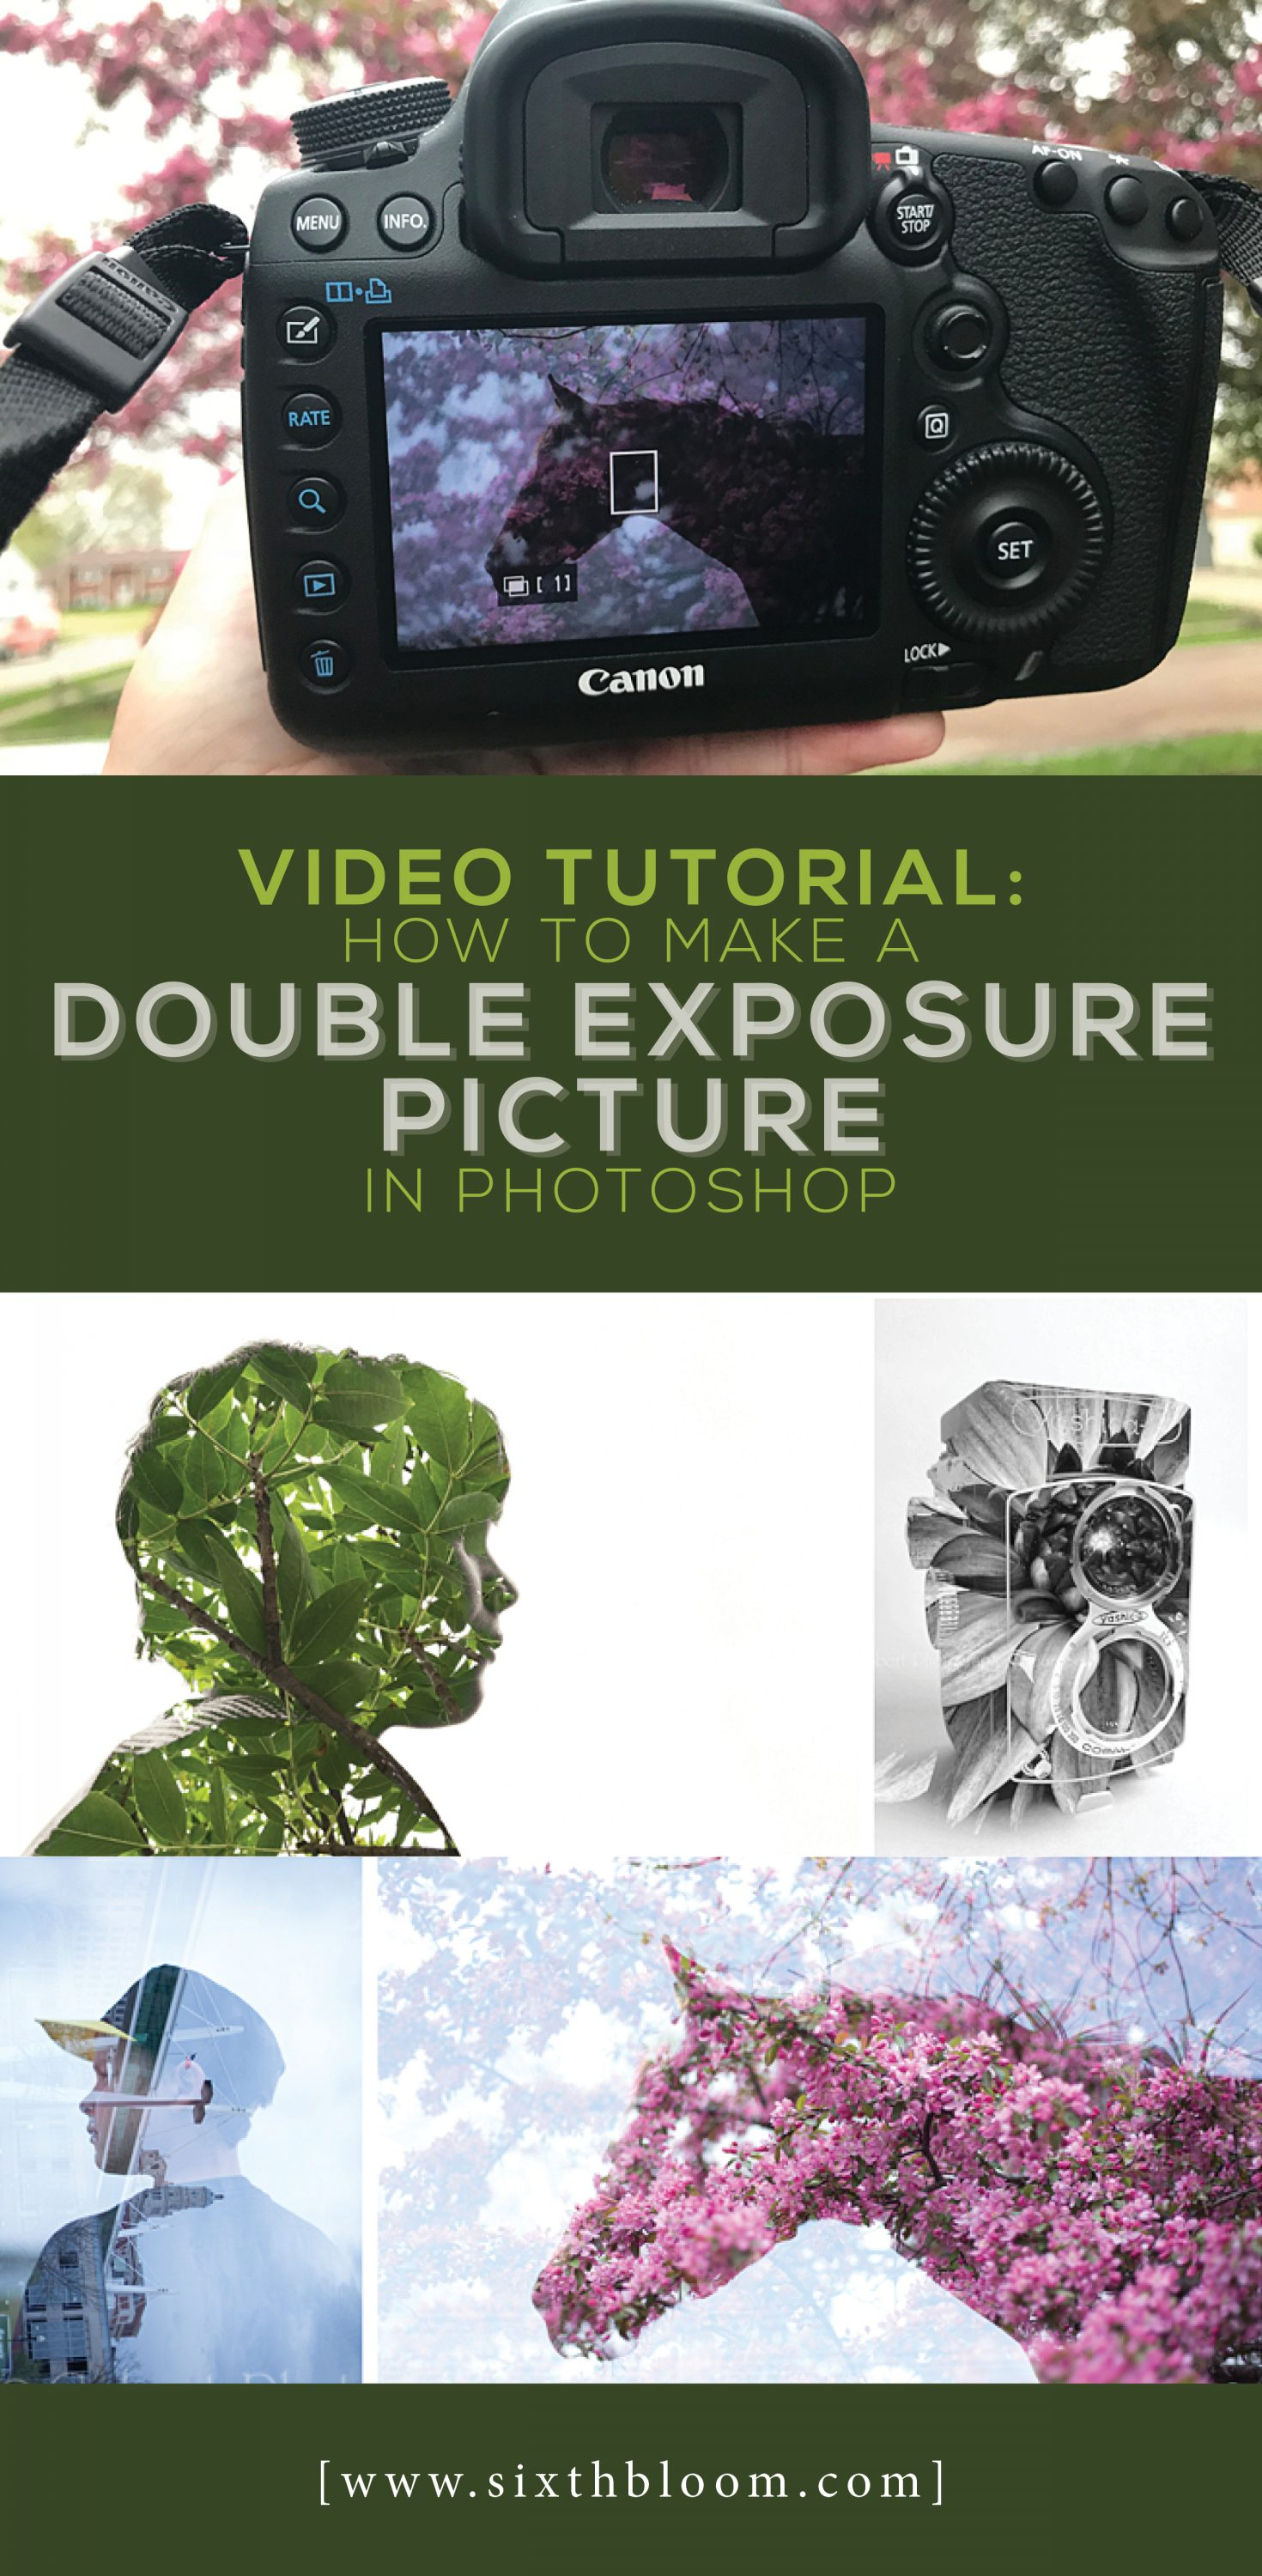 How to Make a Double Exposure Picture in Photoshop